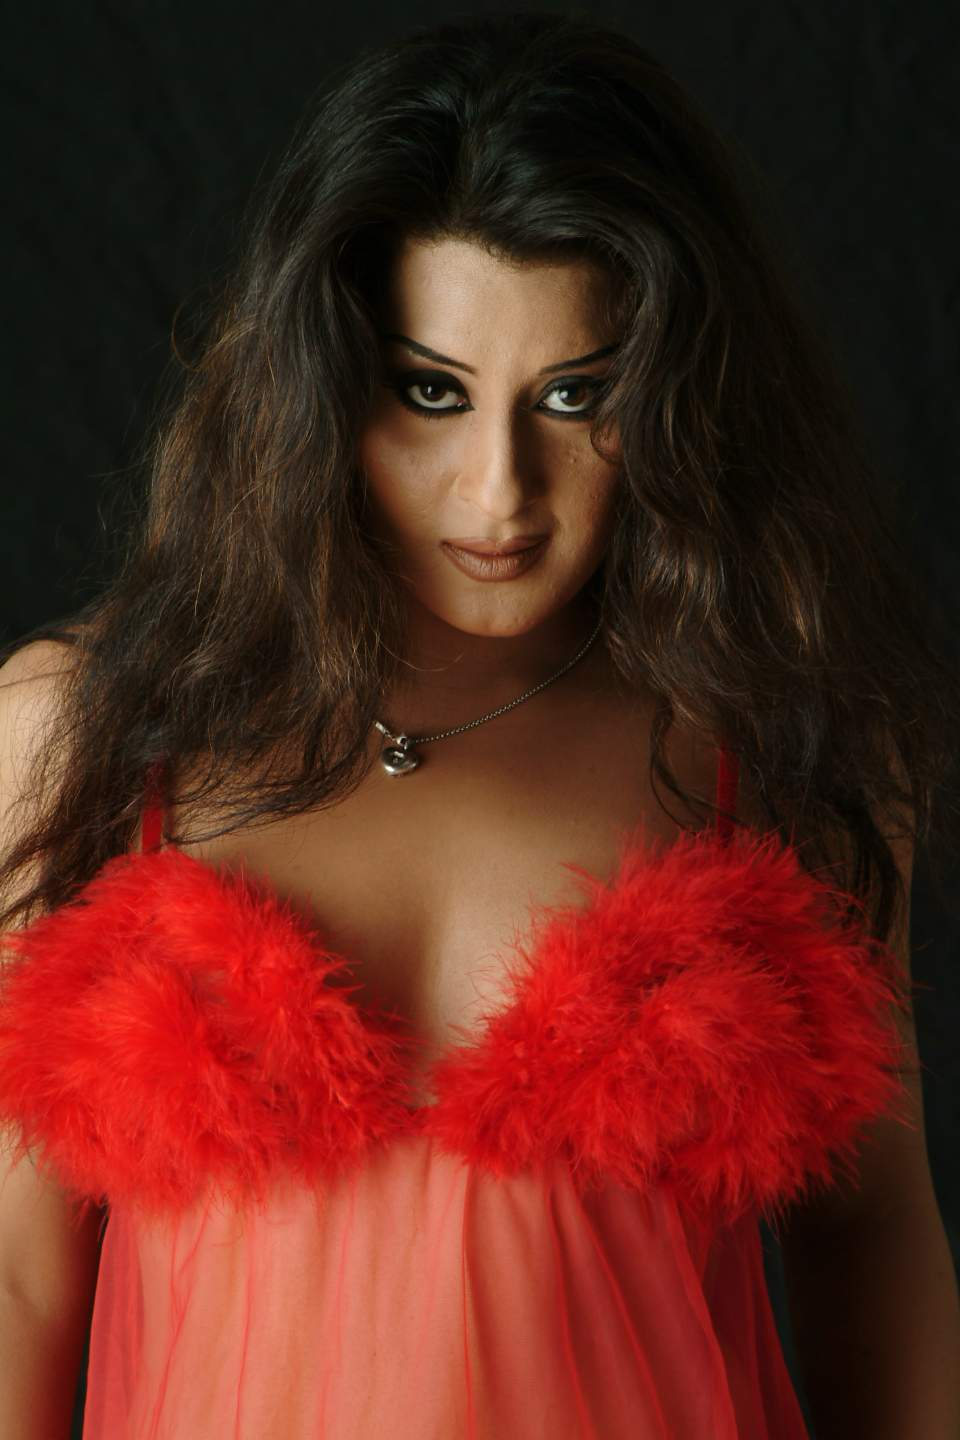 pakistani actres laila khan latest hot and sexy images